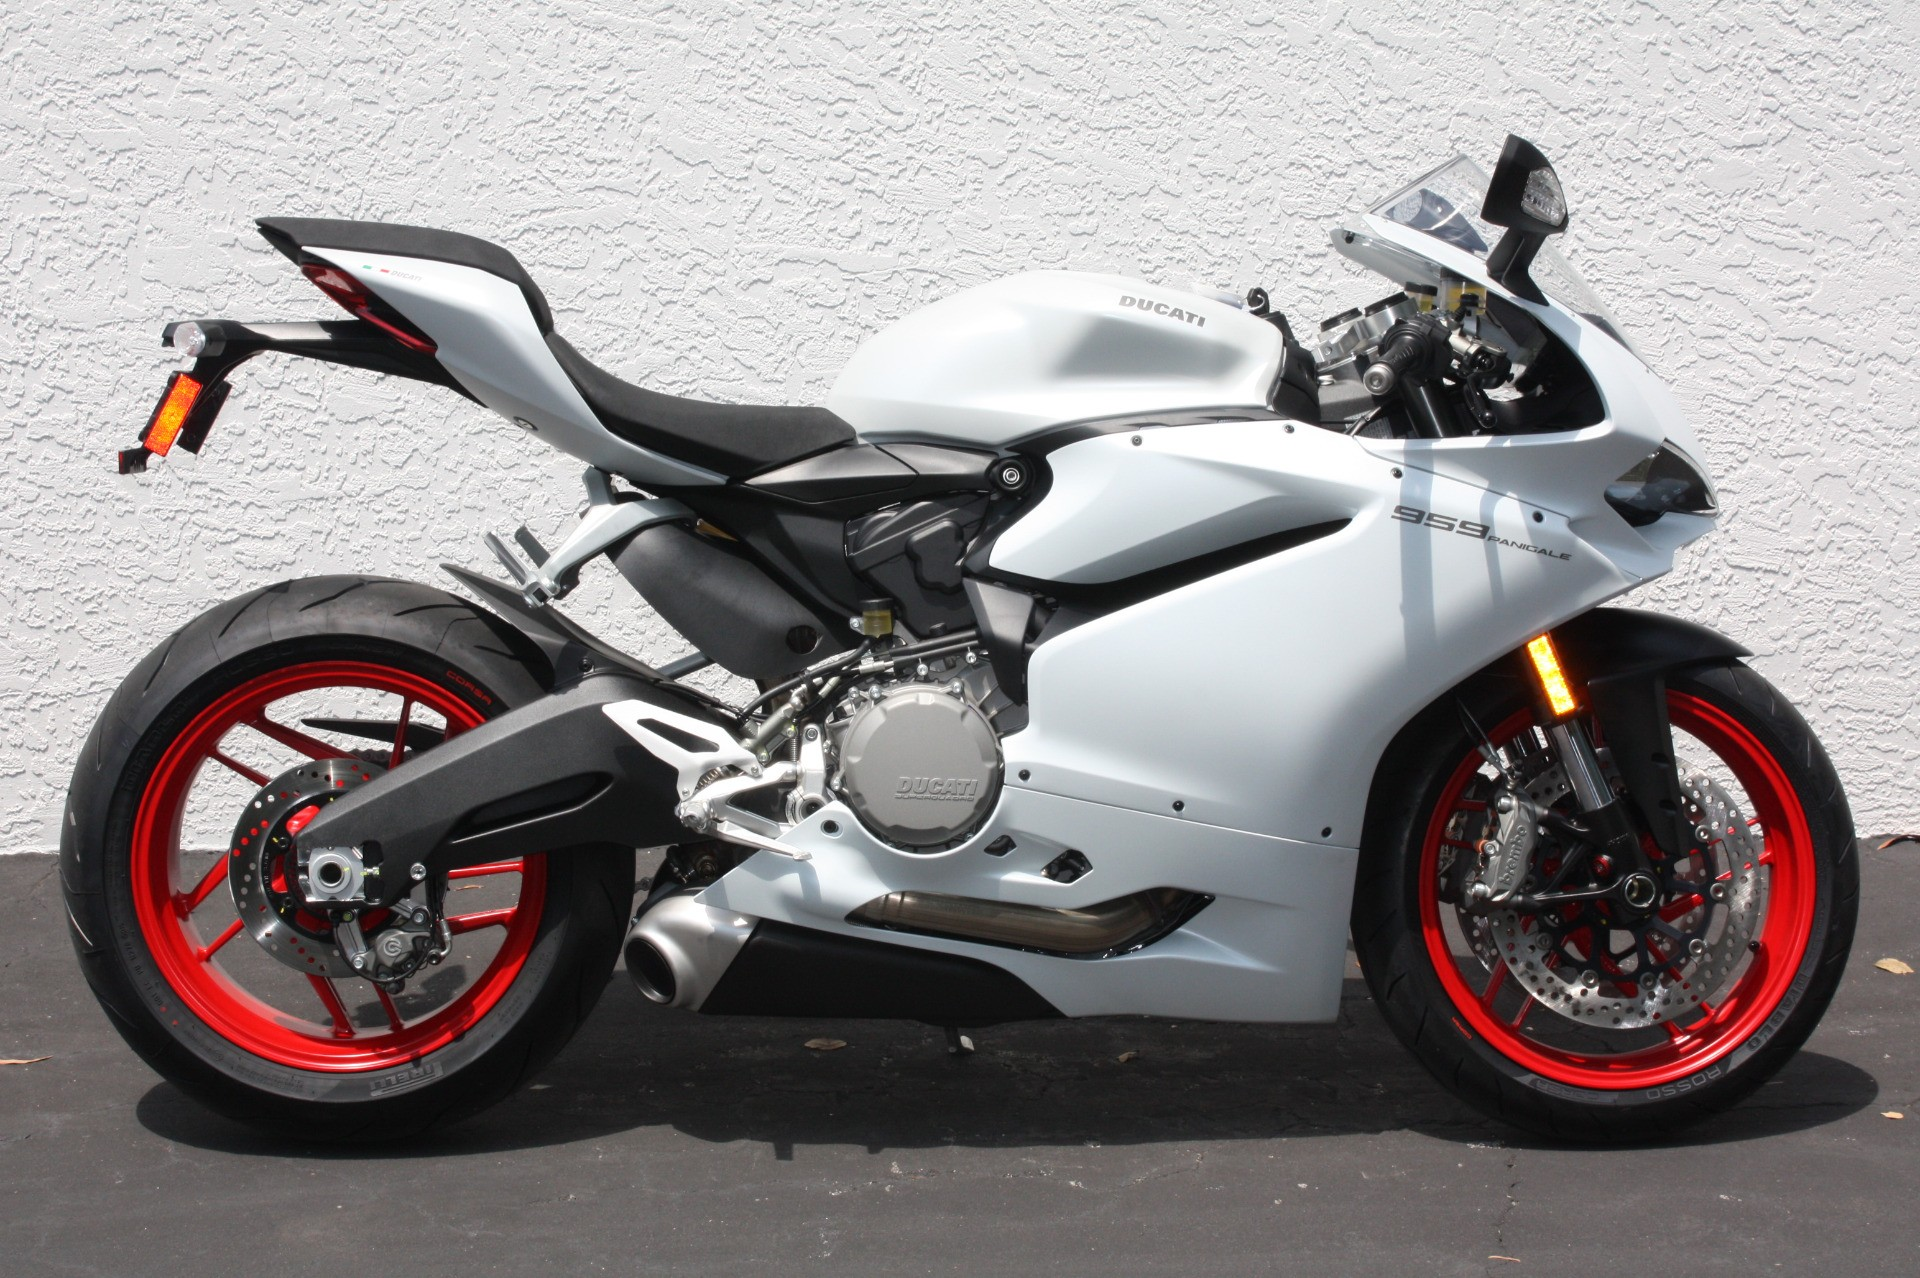 2016 959 Panigale